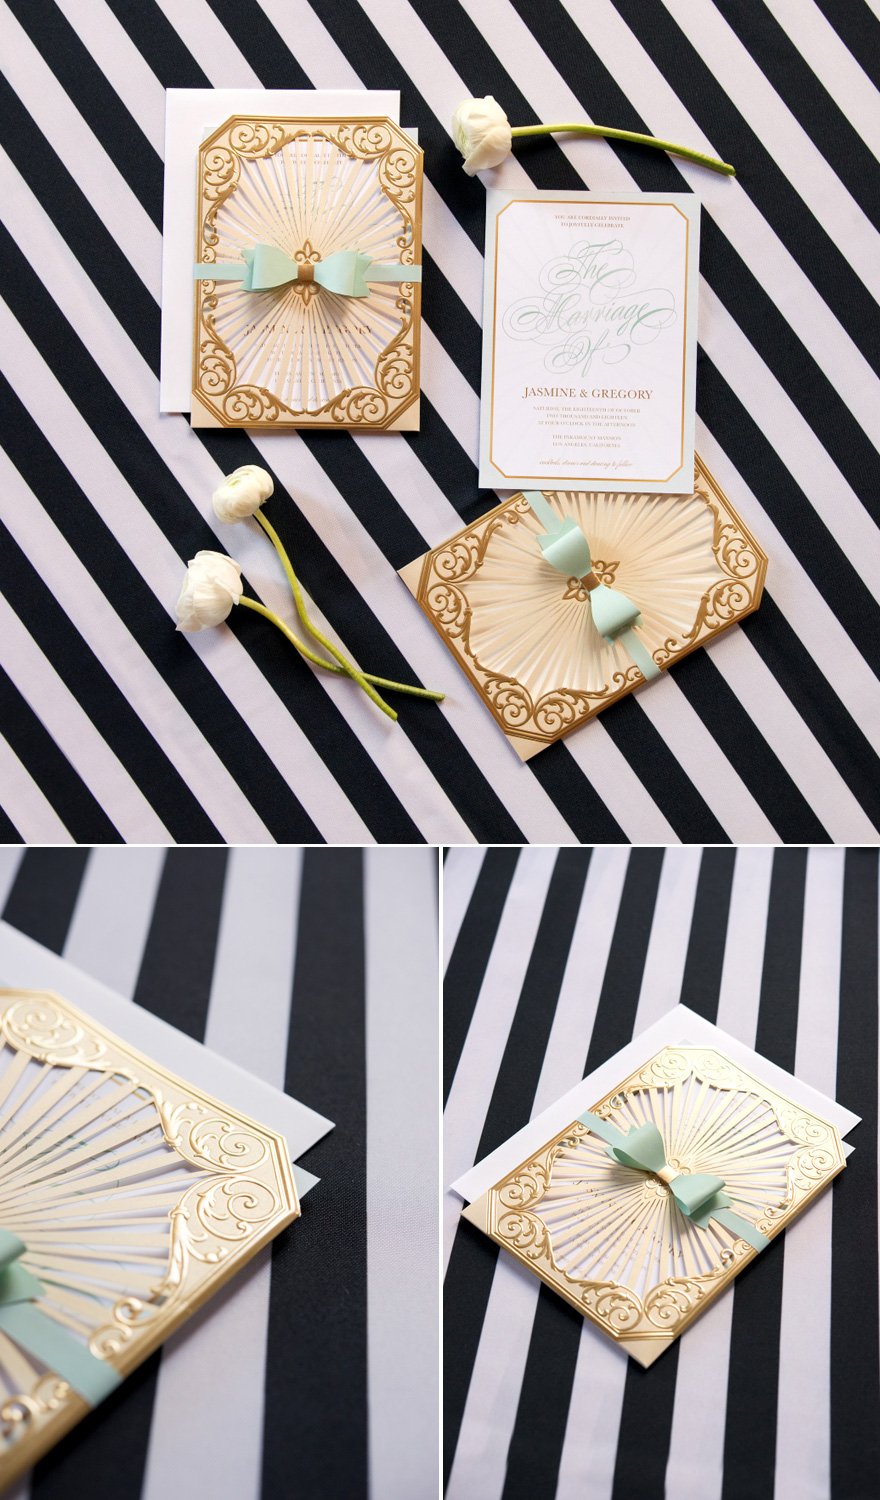 Black and Gold and Mint Green DIY Wedding Stationery with Stripes and Bows Accents | Confetti.co.uk